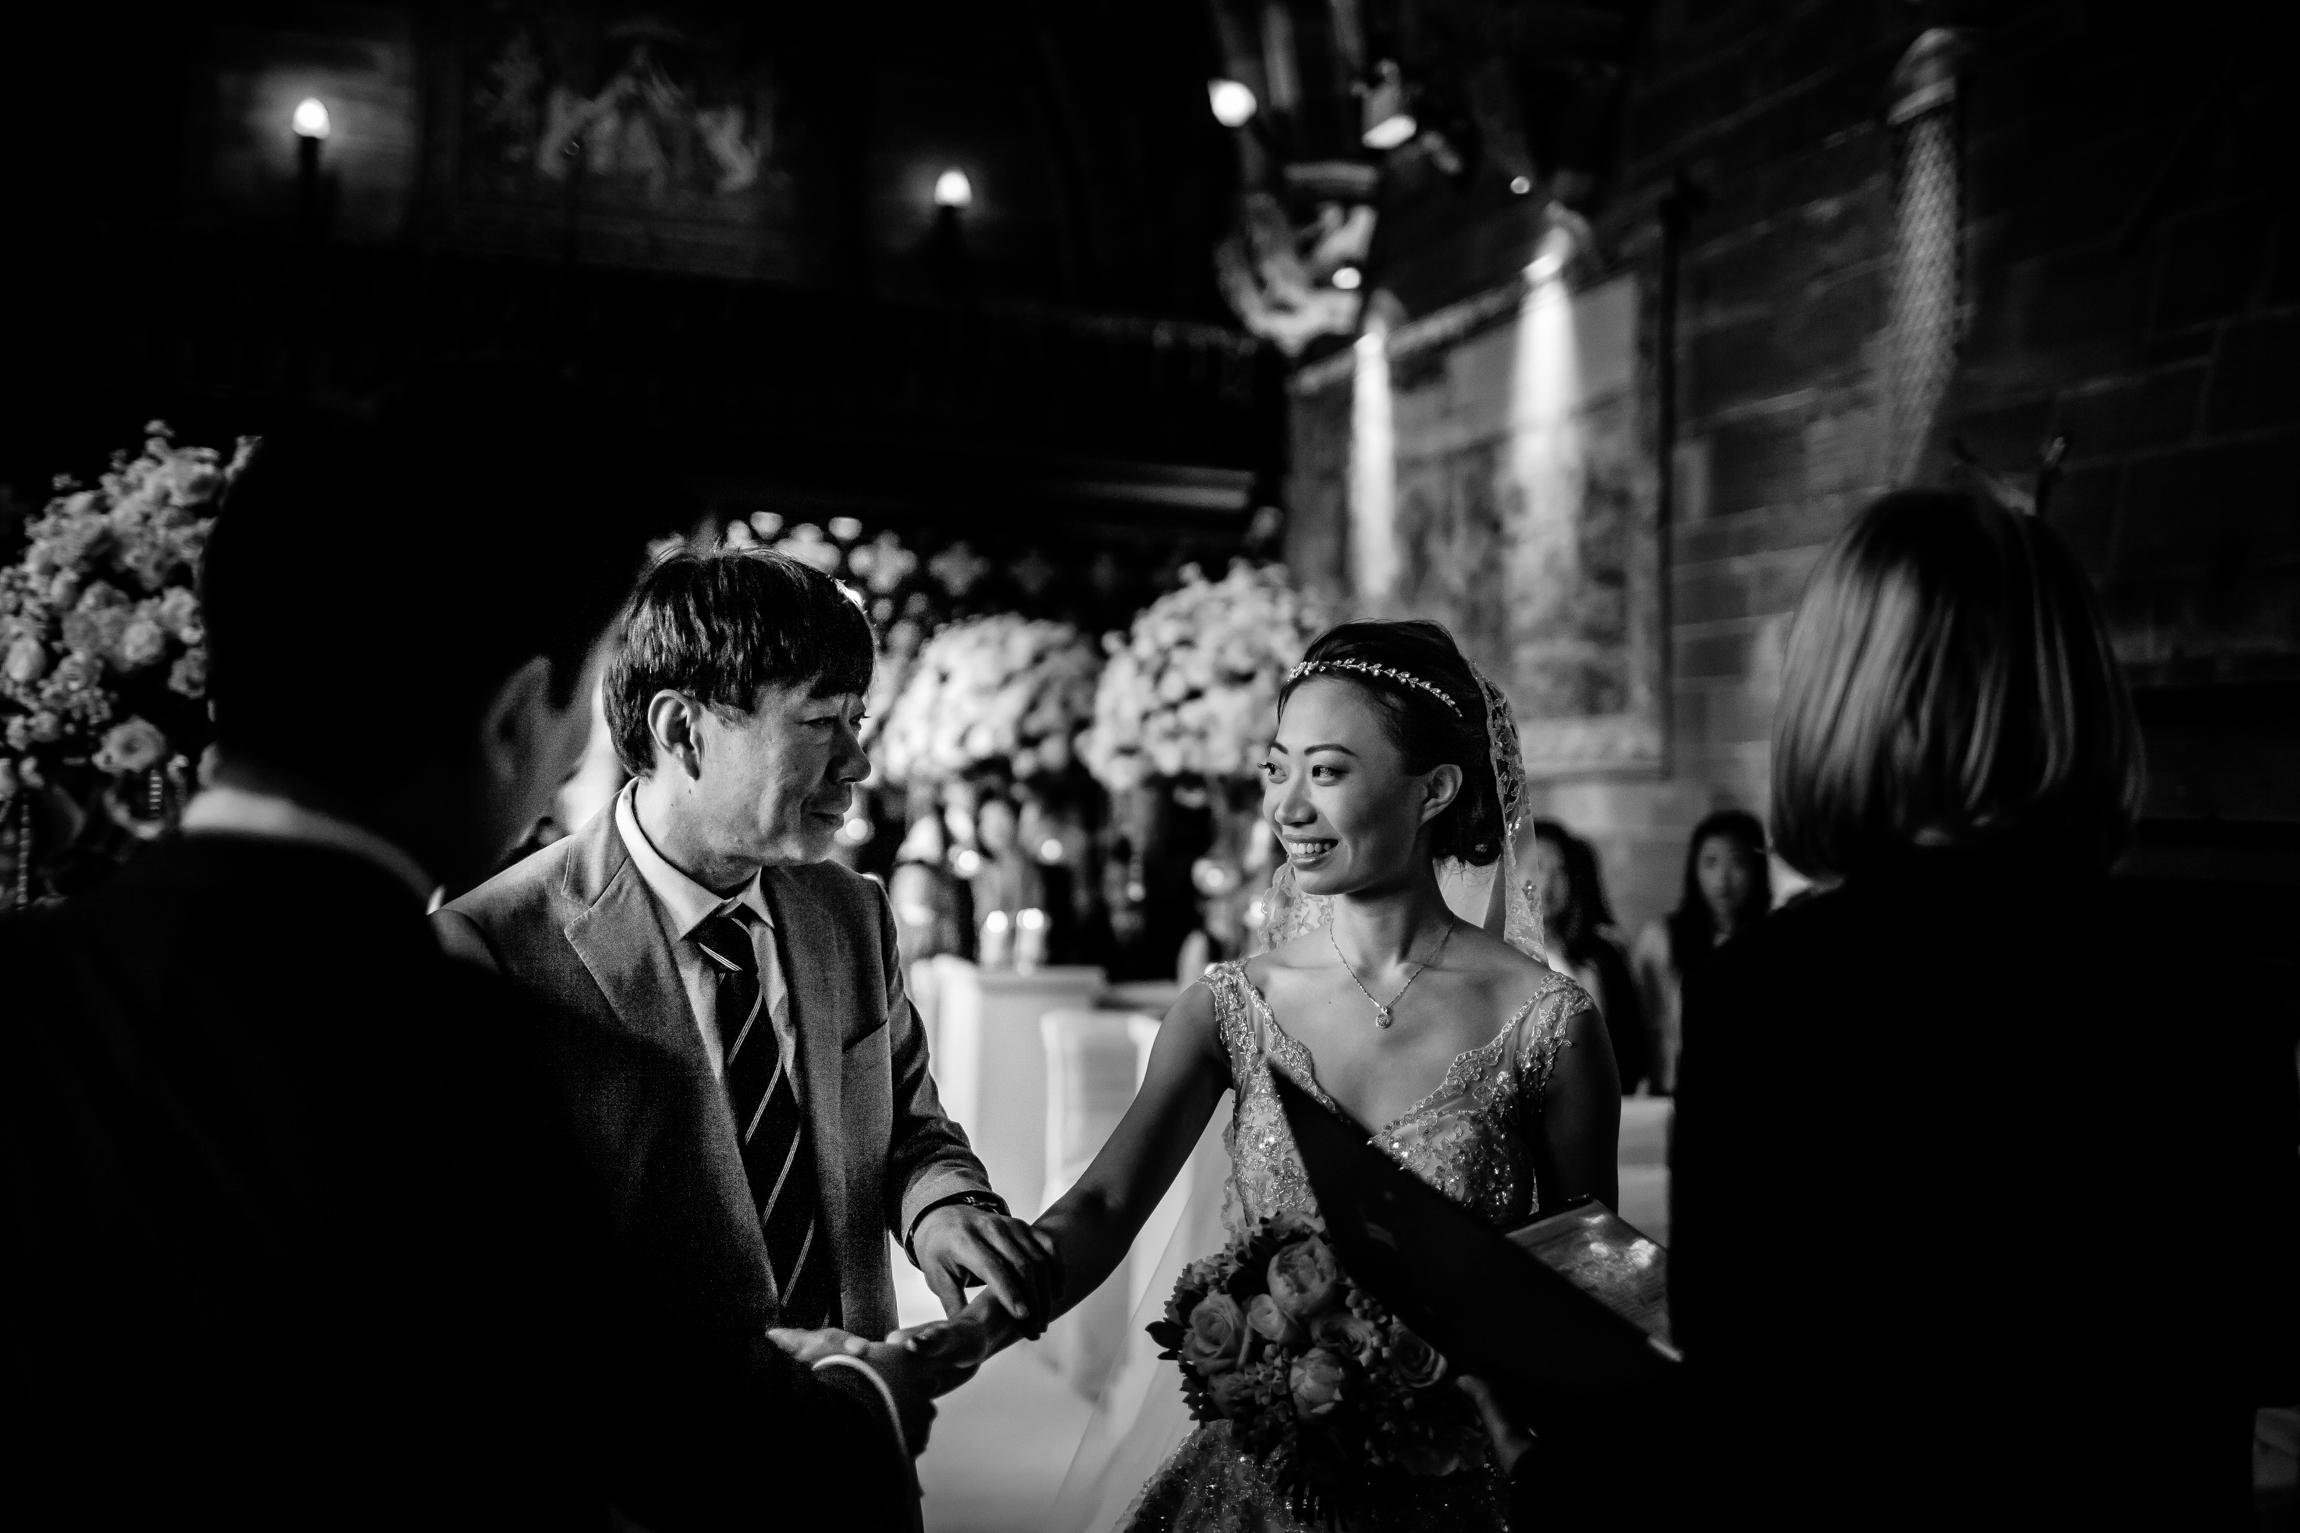 Sonia & Vincent - Sansom Photography Peckforton Castle Wedding Photography-37